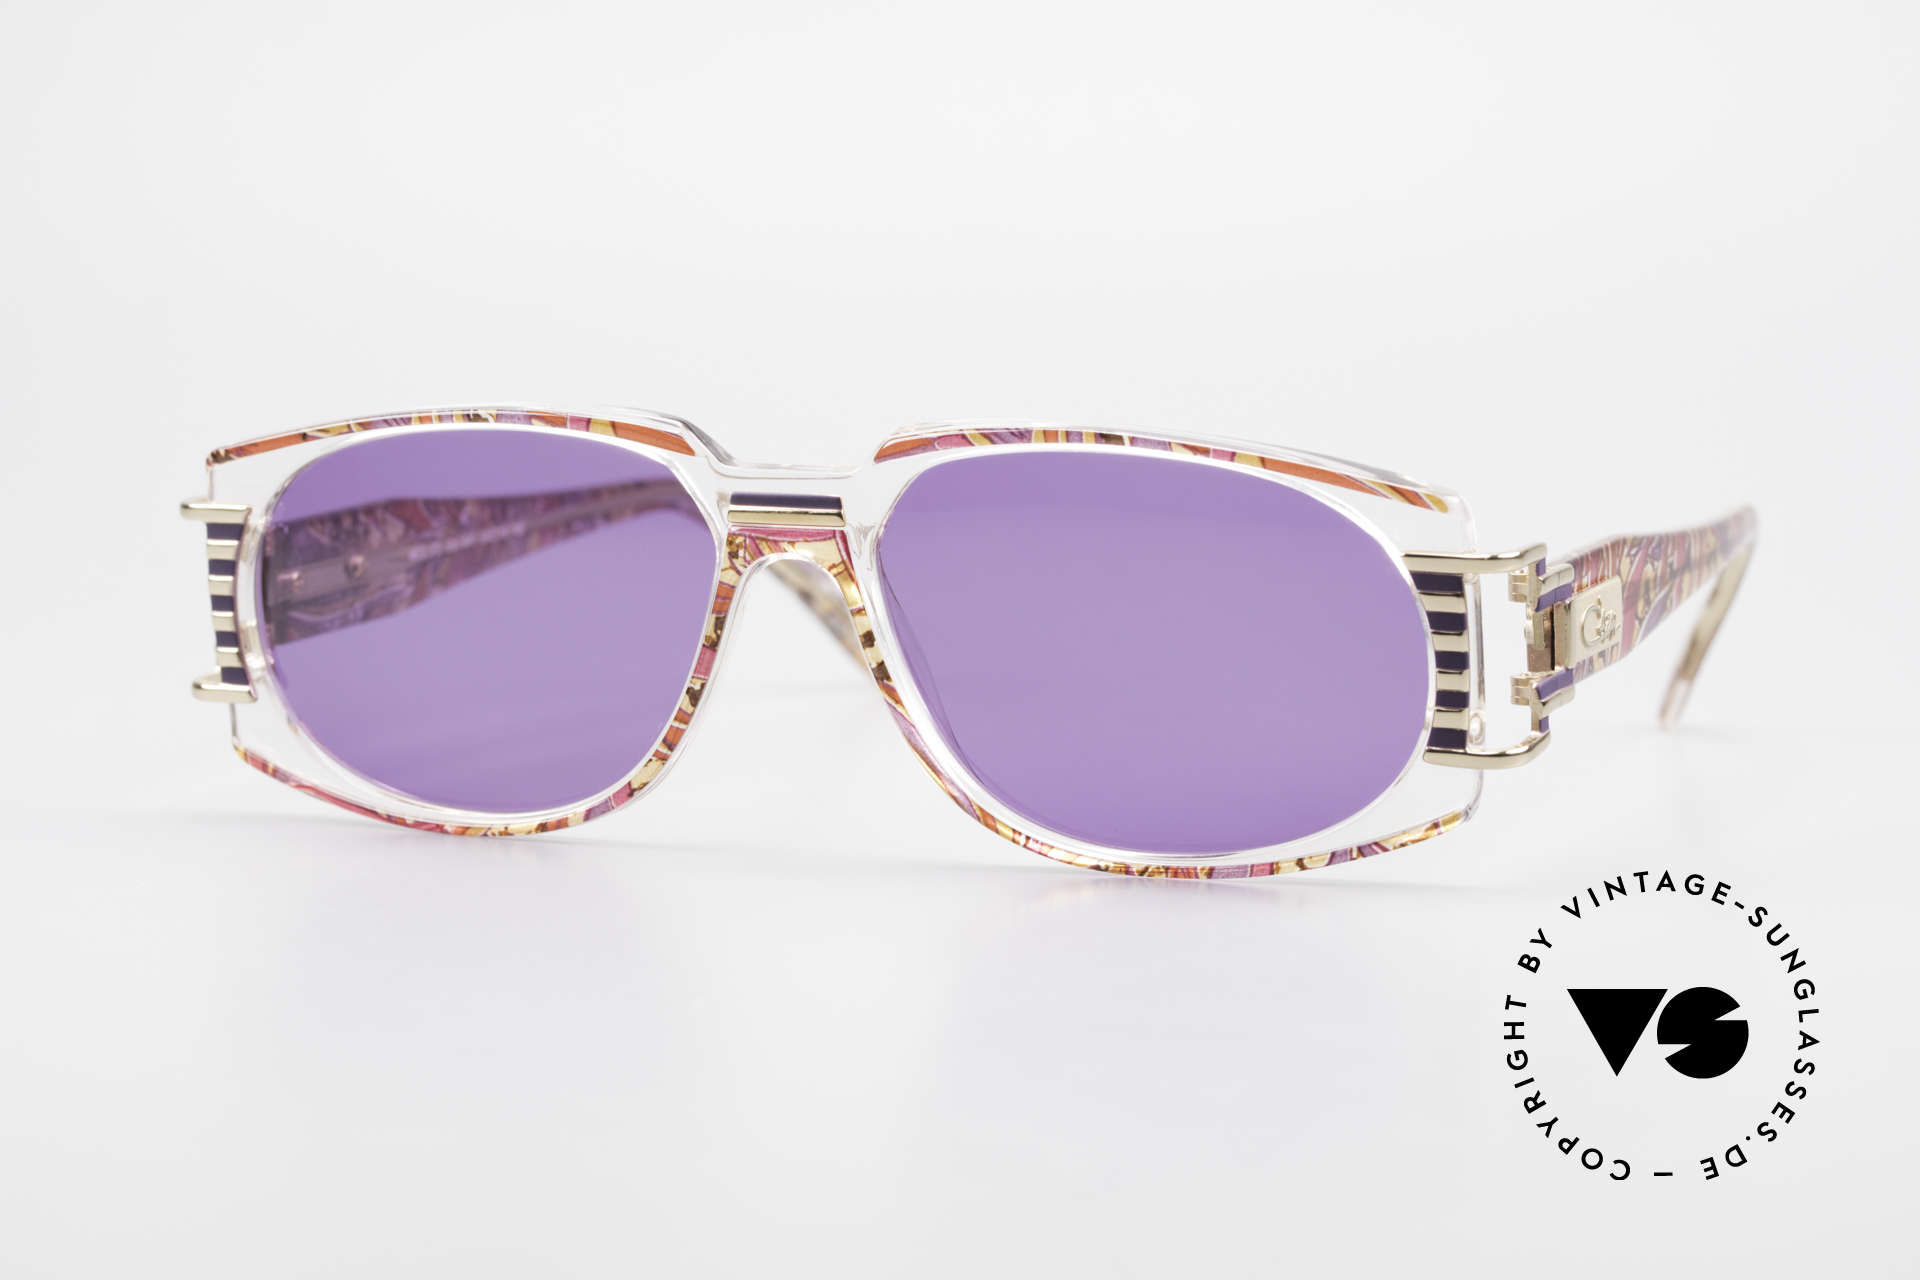 Cazal 372 Rare HipHop Sunglasses 90's, MOD372: ultra rare Cazal vintage model from the mid 90's, Made for Men and Women